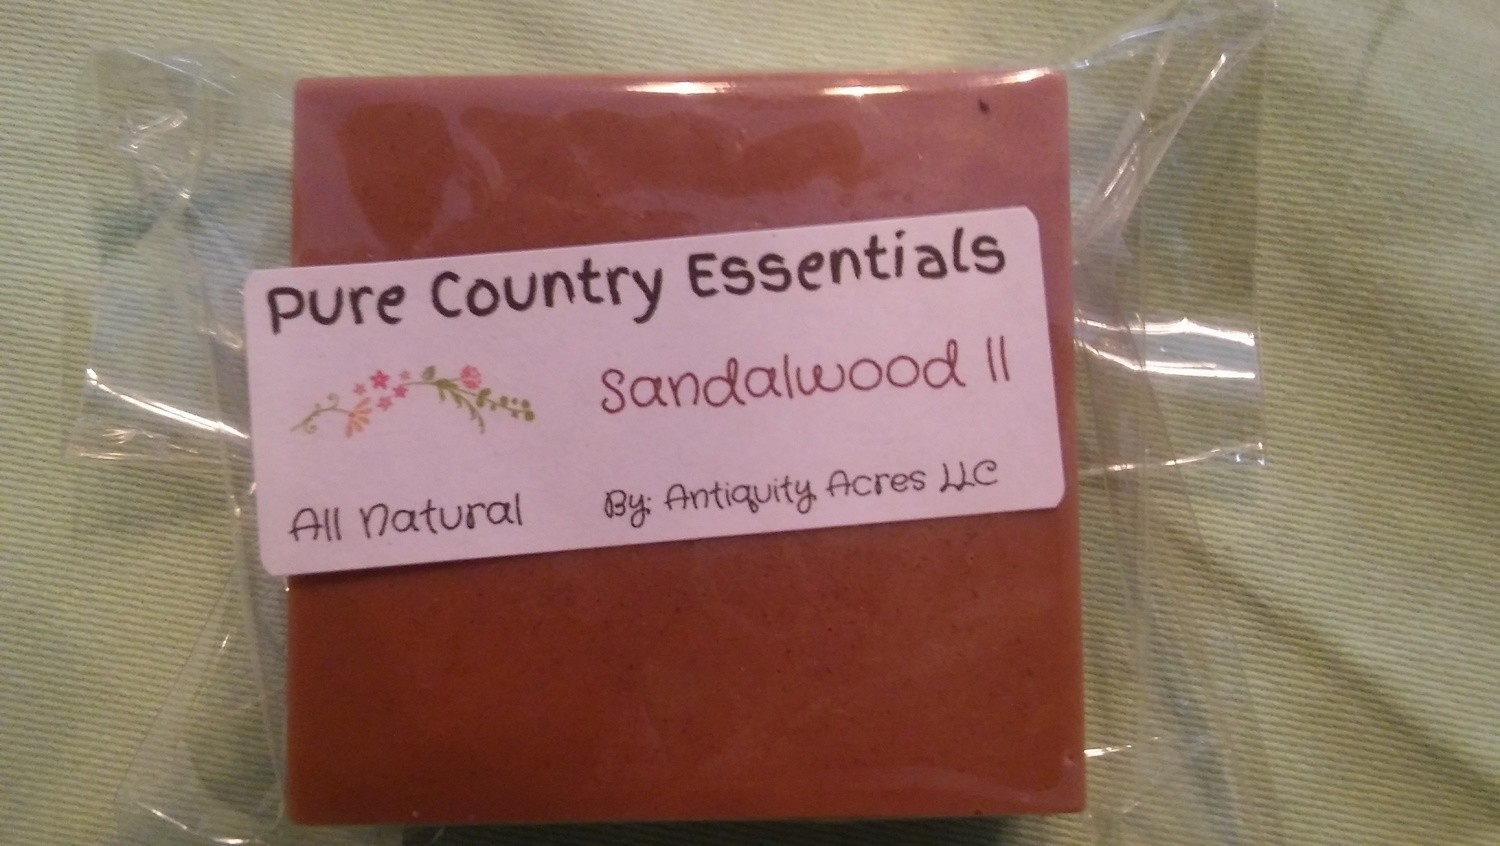 Pure Country Essentials Soap, Cocoa Butter, Sandalwood ll Fragrance, Square